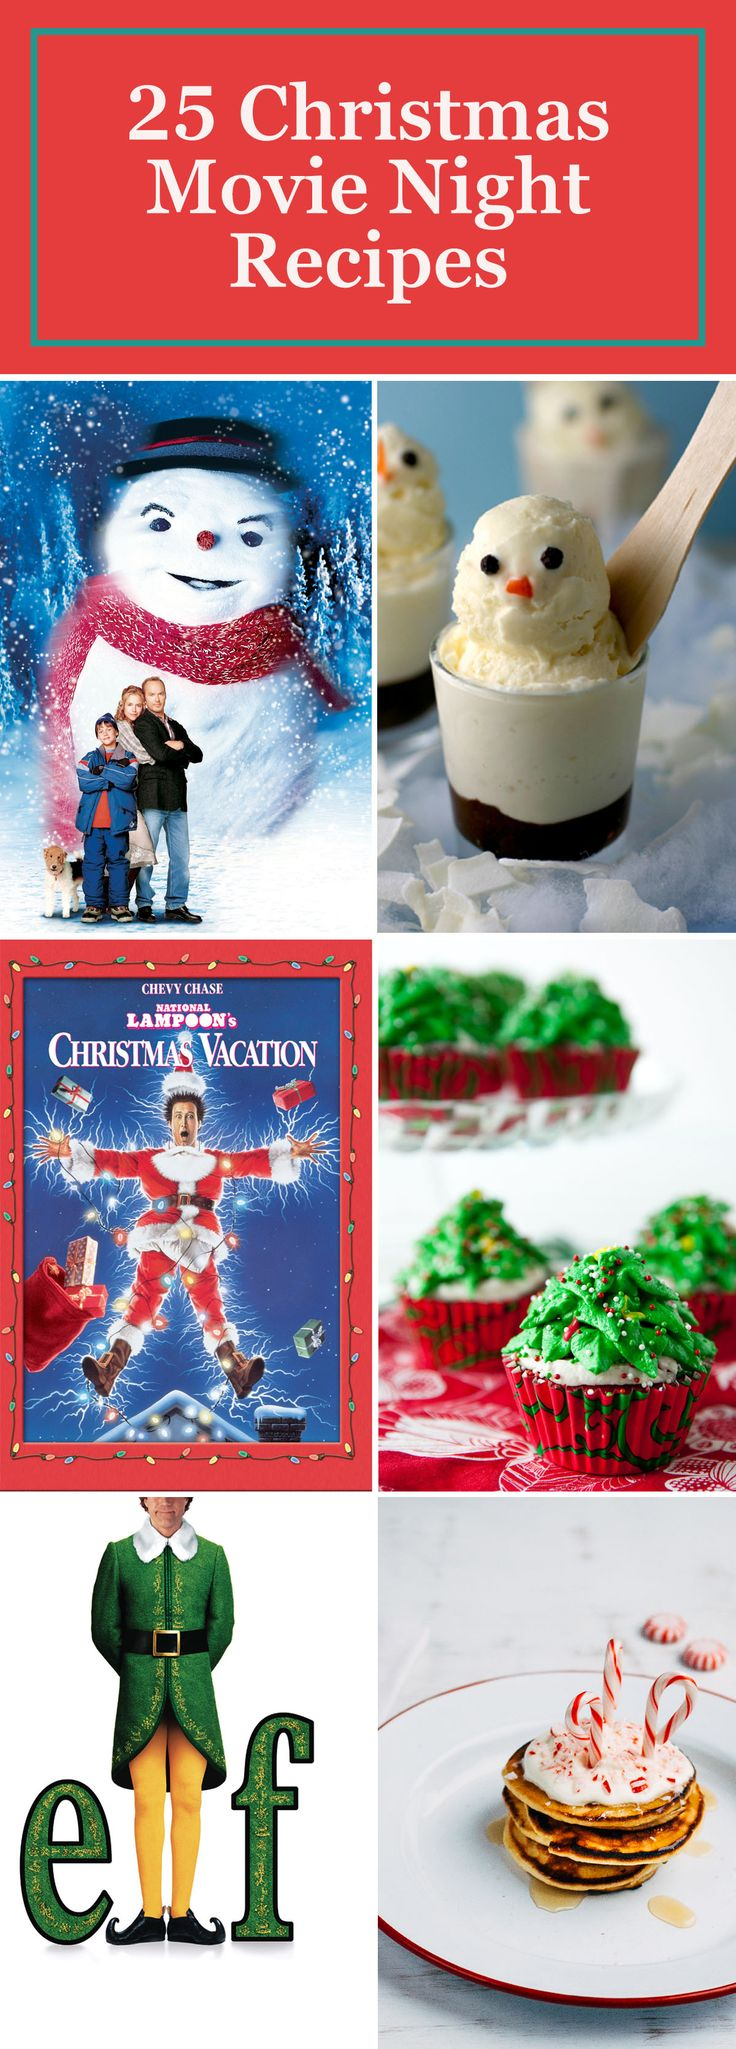 We've got the perfect pairings for all of your favorite Christmas movies, from savory snacks to delicious